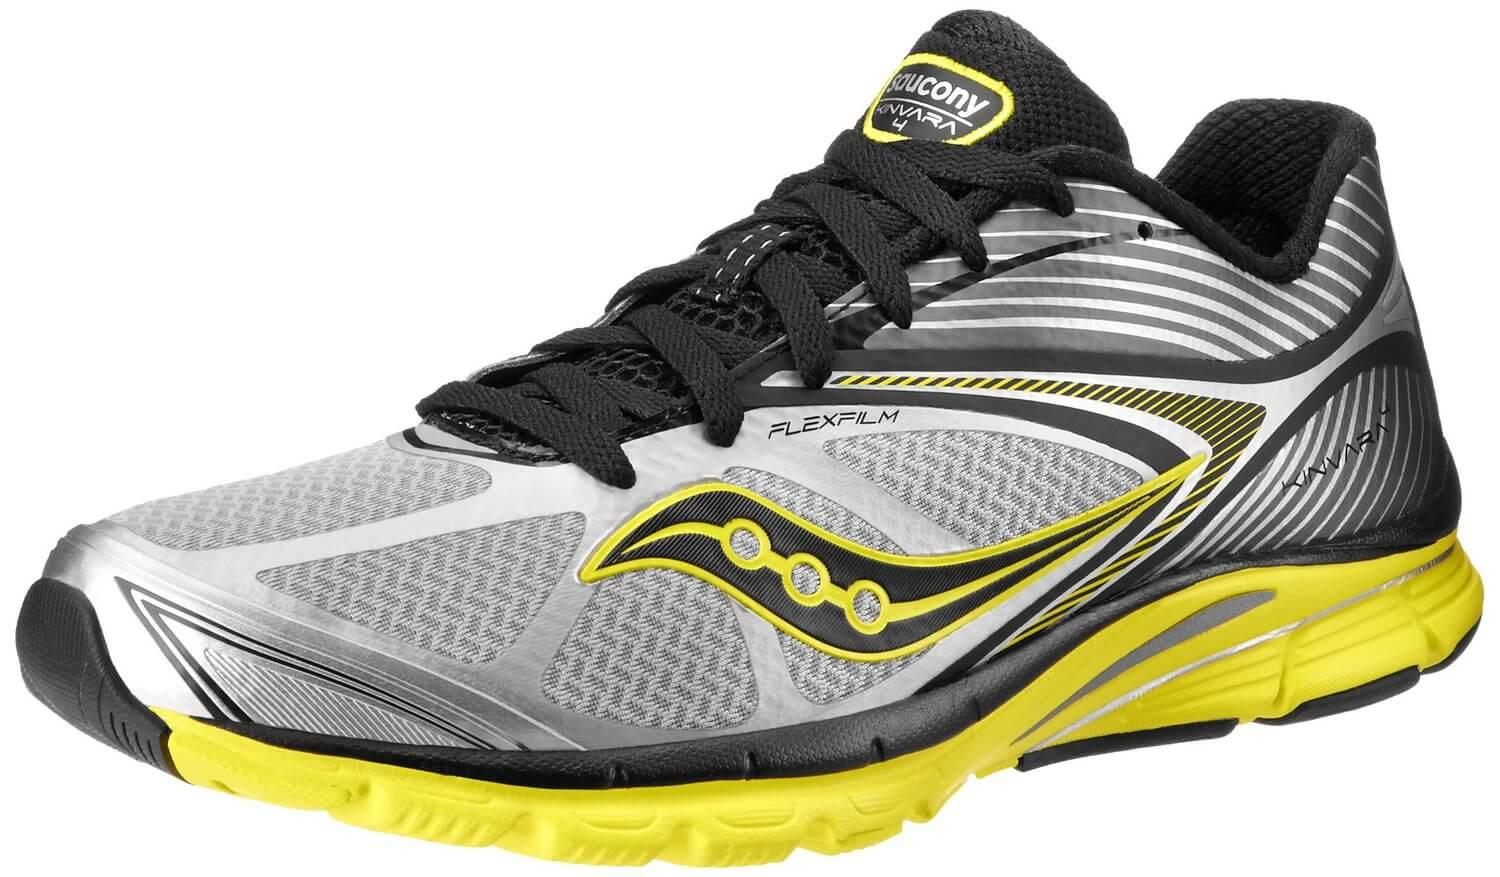 the Saucony Kinvara 4 is a comfortable, lightweight running shoe that is durable and aesthetically pleasing